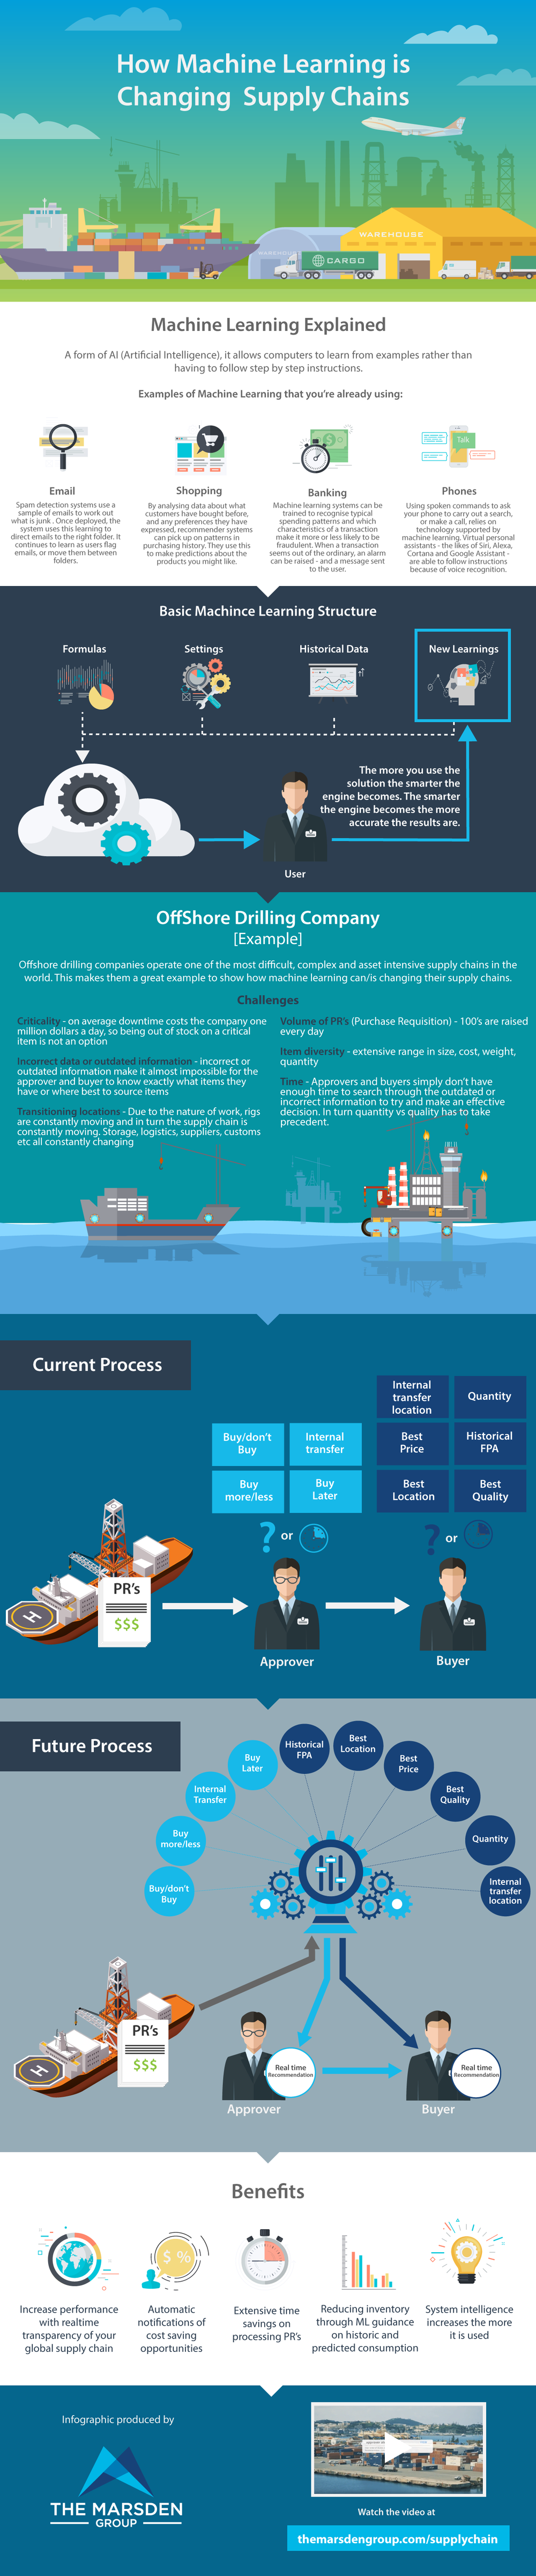 machine learning supply chain infographic.png